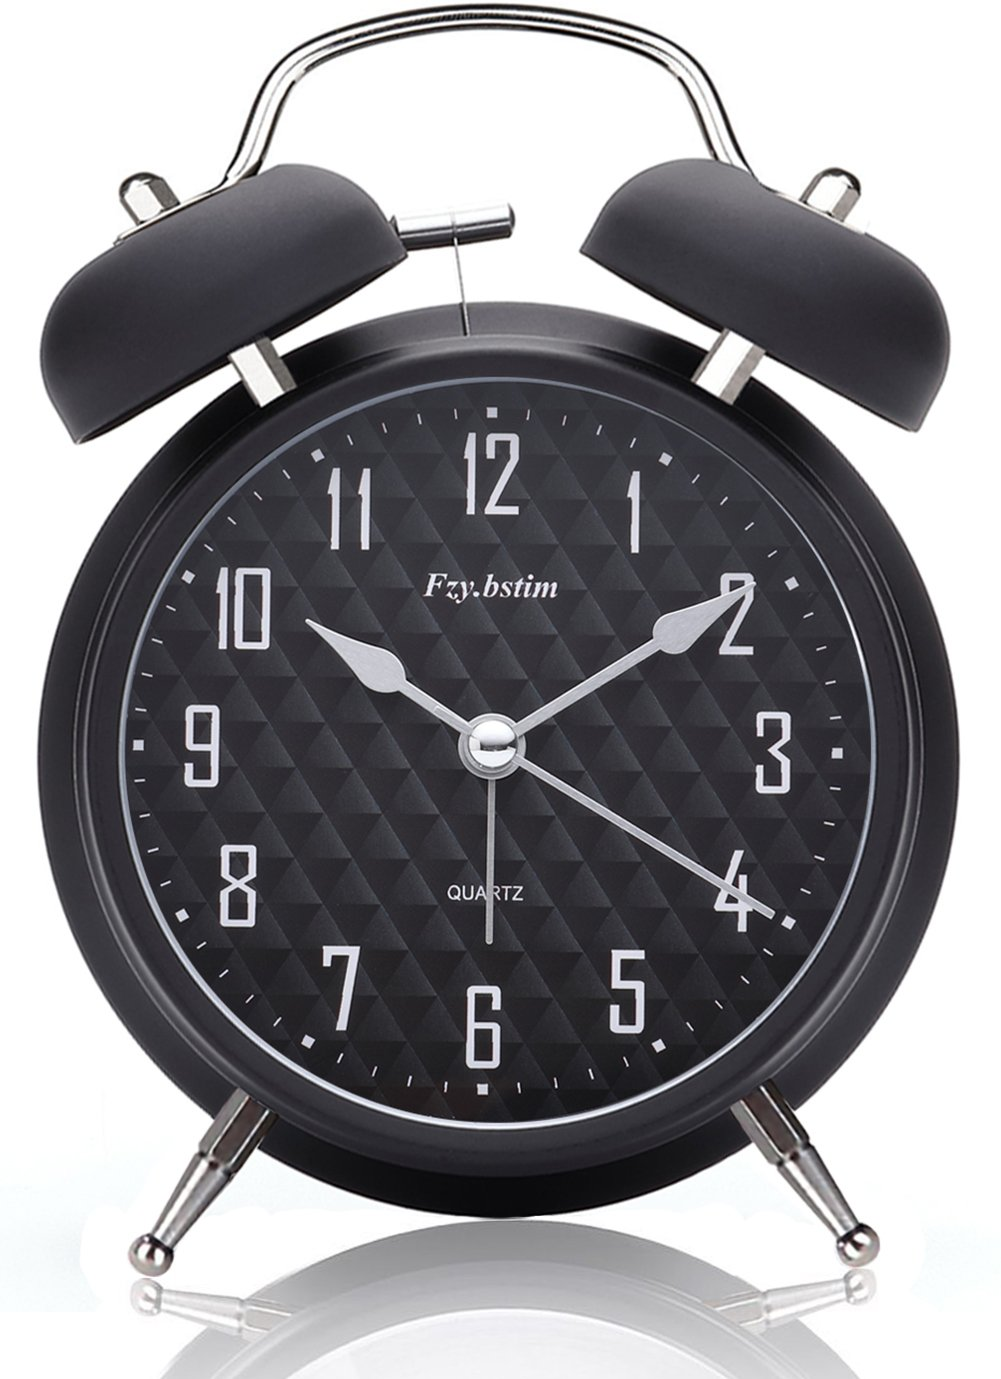 Fzy.bstim 4'' Twin Bell Alarm Clock Battery Operated,with Backlight,Non-ticking Silent Alarm Clocks for Bedrooms,Loud Alarm Clock for Heavy sleepers(Black)